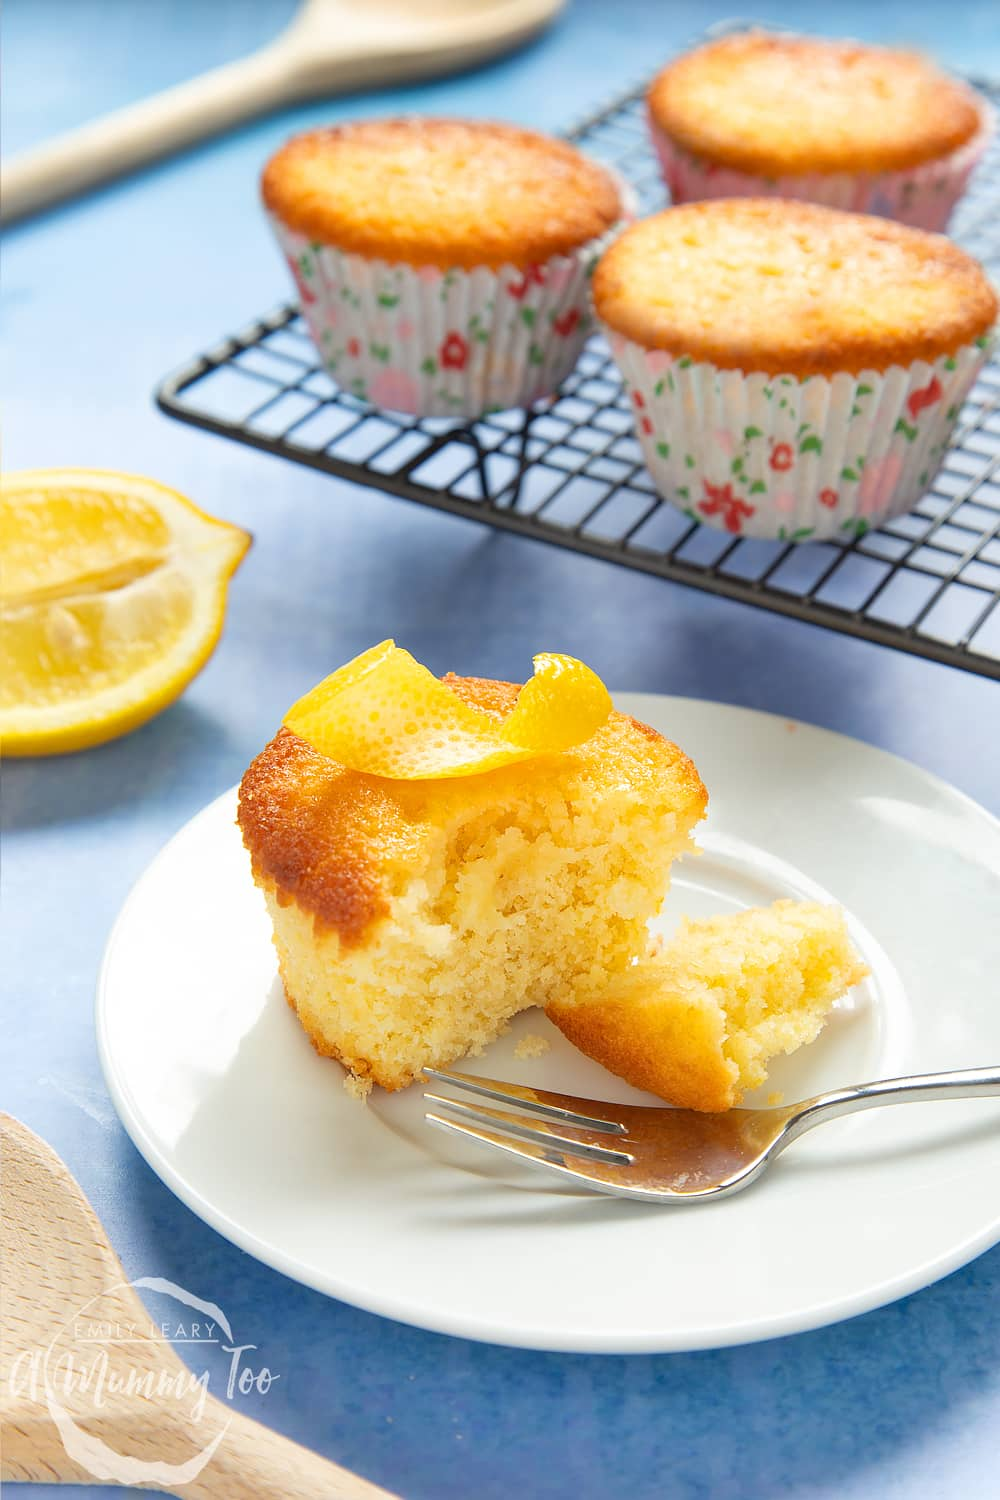 Lemon drizzle cupcake on a white plate with a cake fork. A curl on lemon ring sits on top of the cake, which has been cut open. More cakes are cooling on a rack in the background.